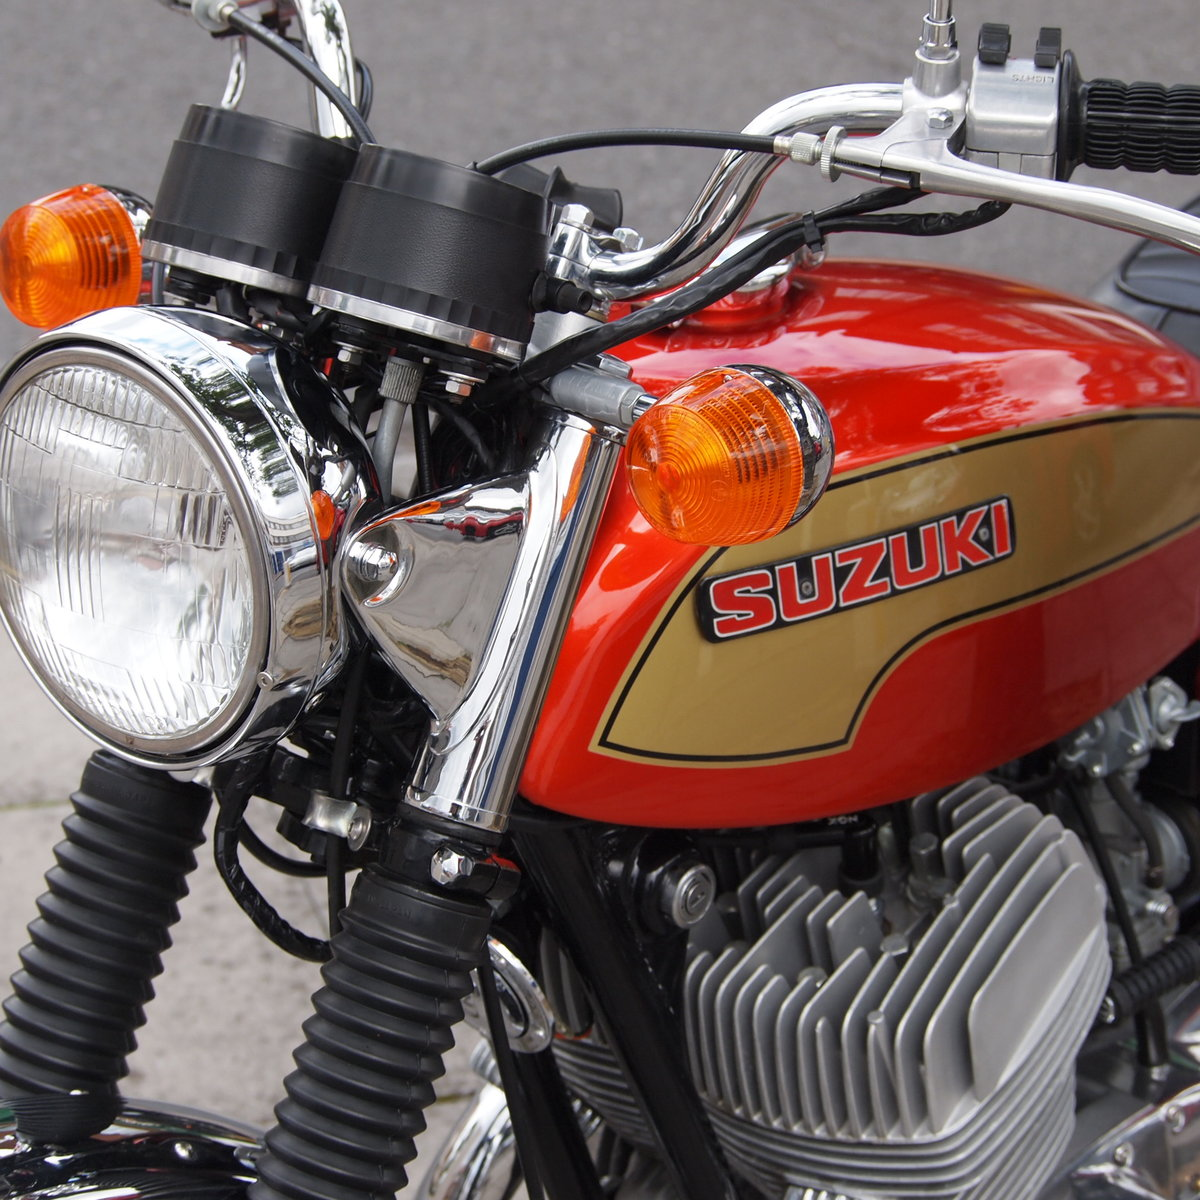 1974 Suzuki T500 In Beautiful Condition, RESERVED FOR TERRY. SOLD (picture 6 of 6)